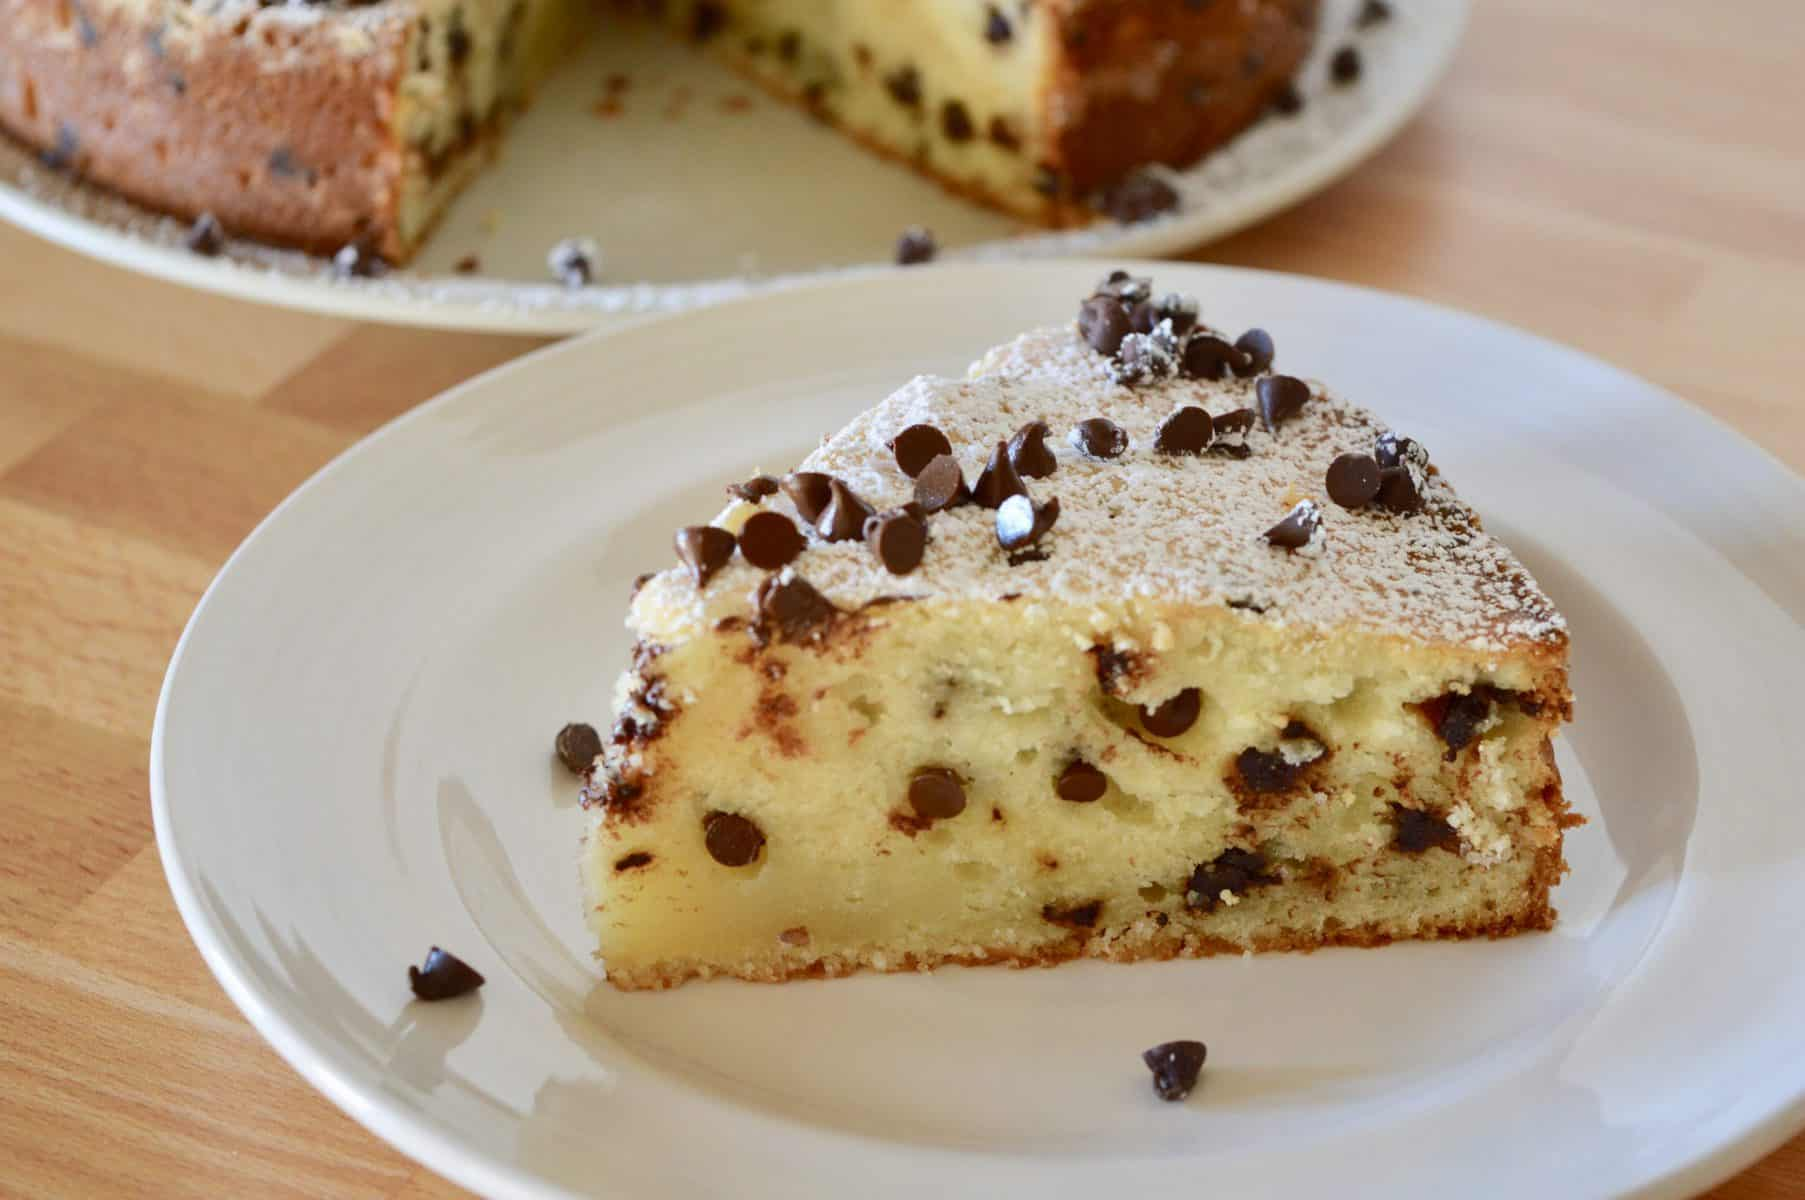 slice of chocolate chip ricotta cake on a white plate.